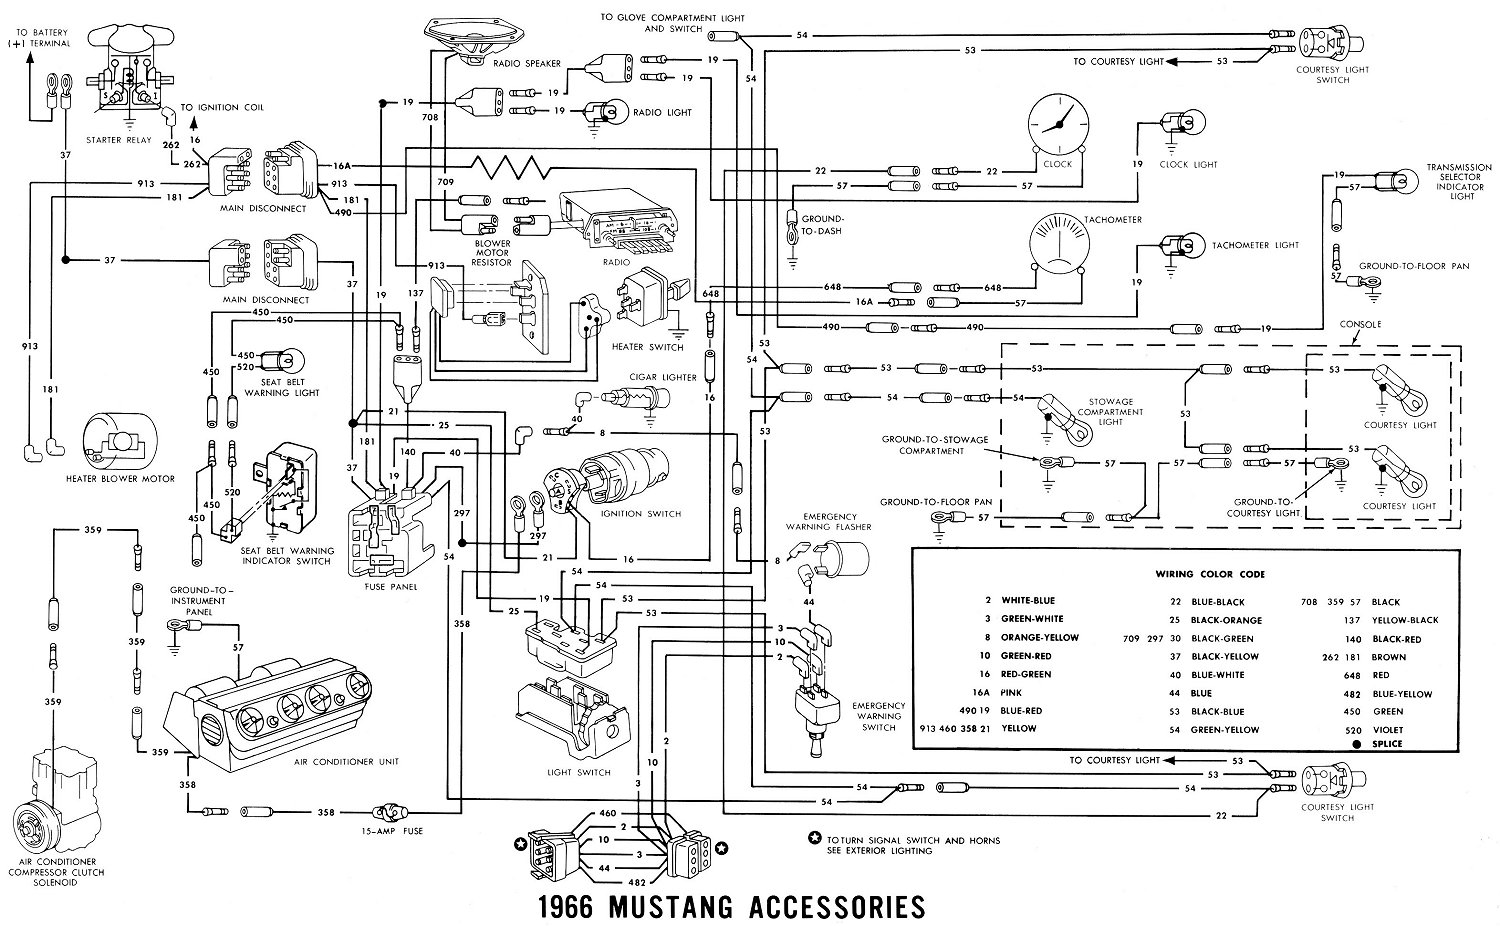 66acces1 ford mustang wiring diagrams ford wiring diagrams instruction 65 mustang radio wiring diagram at soozxer.org